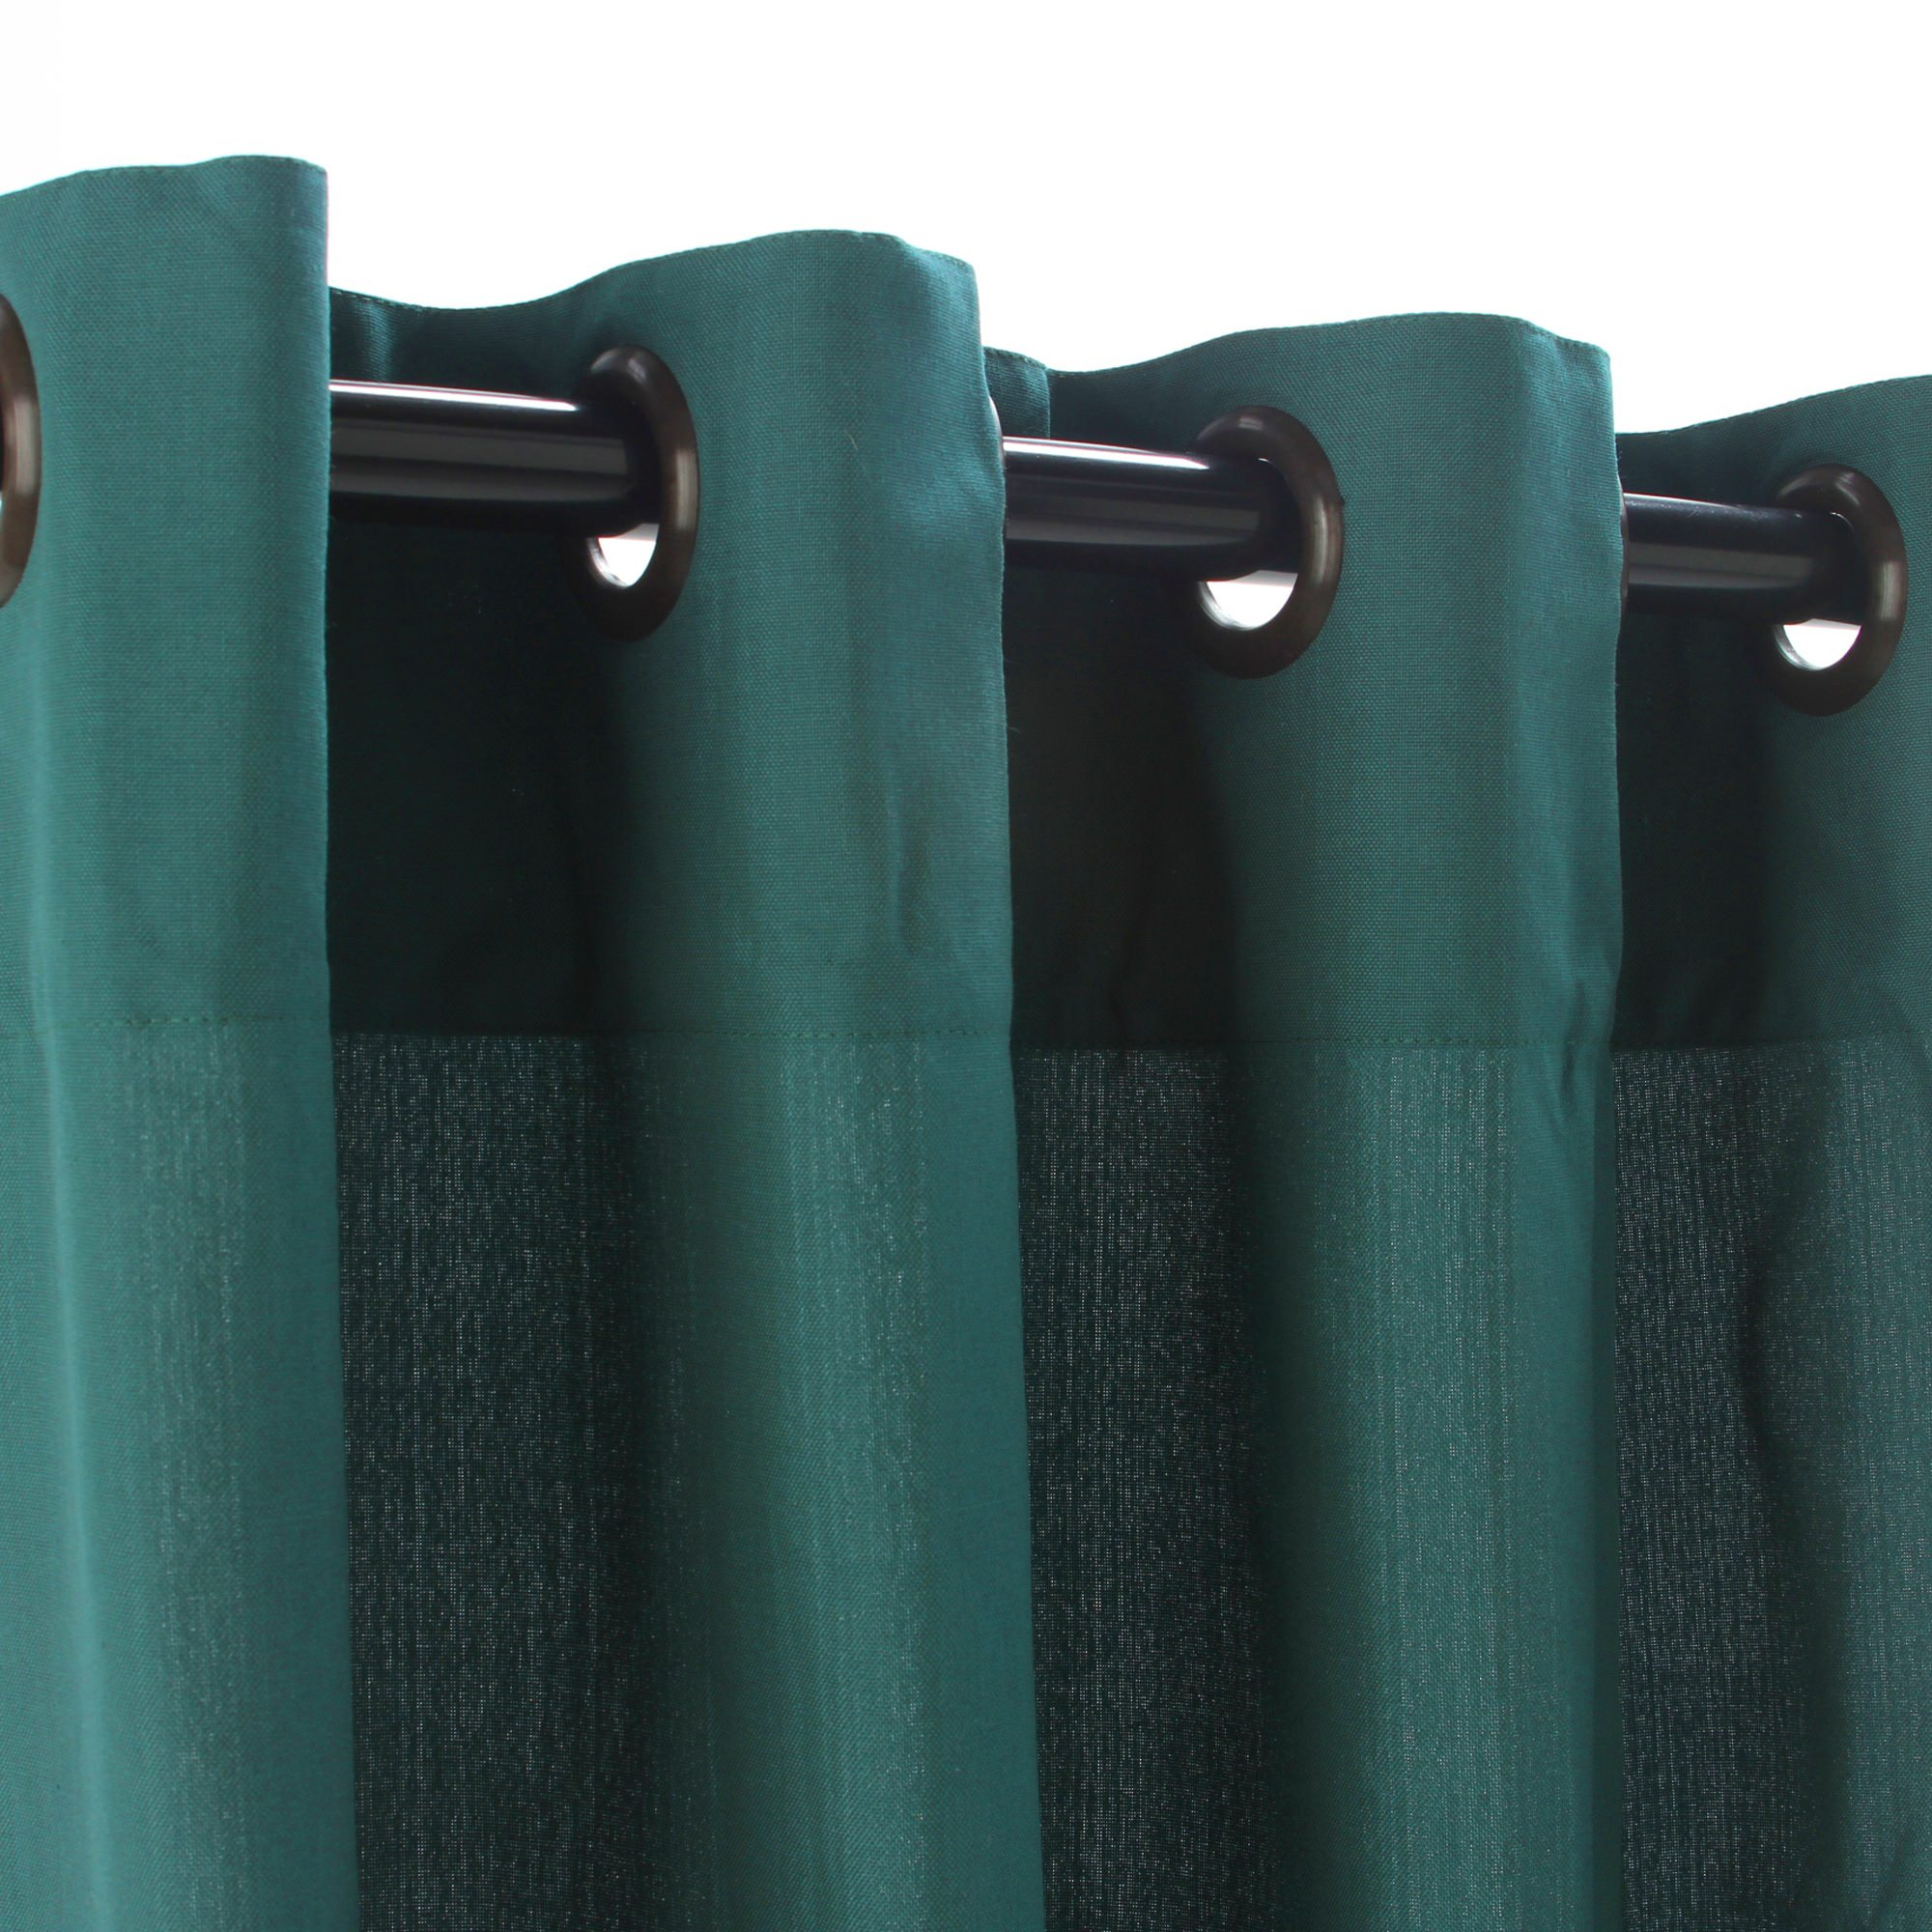 Weathersmart Outdoor Curtain With Grommets Emerald 50x120 Weathersmart Sku Cur120emgr